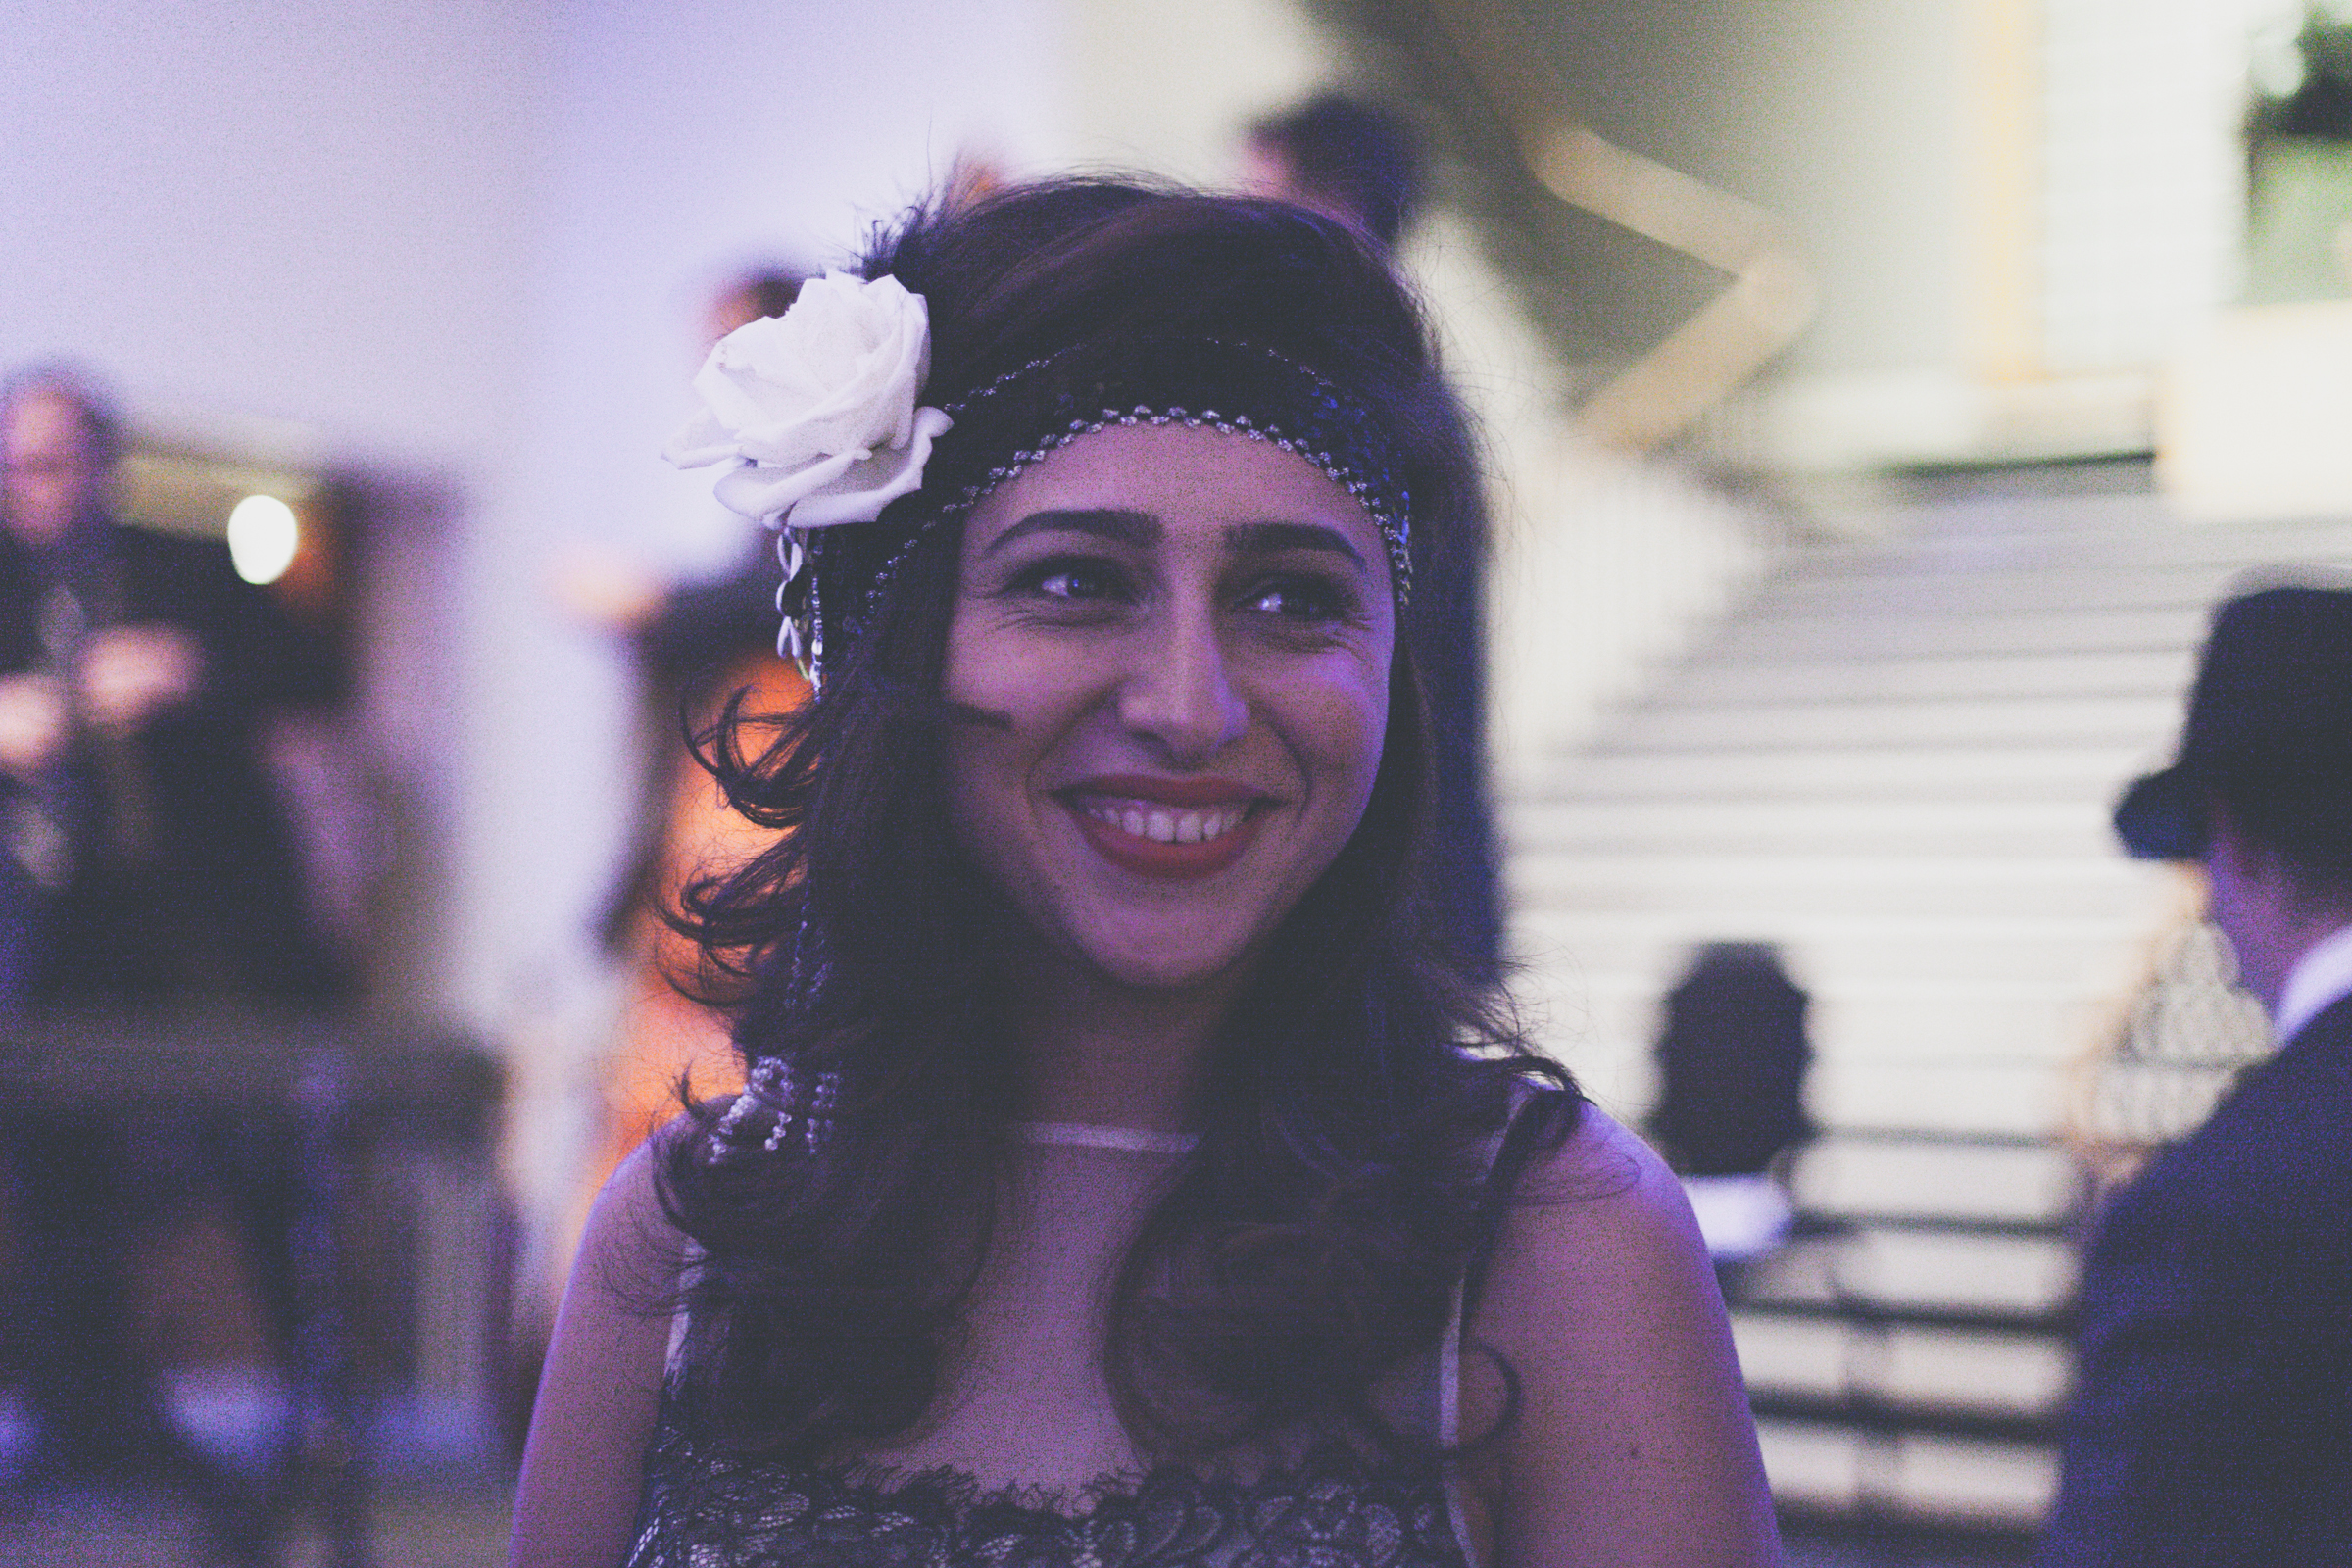 This jolly museum-goer could easily pass for a 1920s belle. Photo by Marie-Pierre Savard.